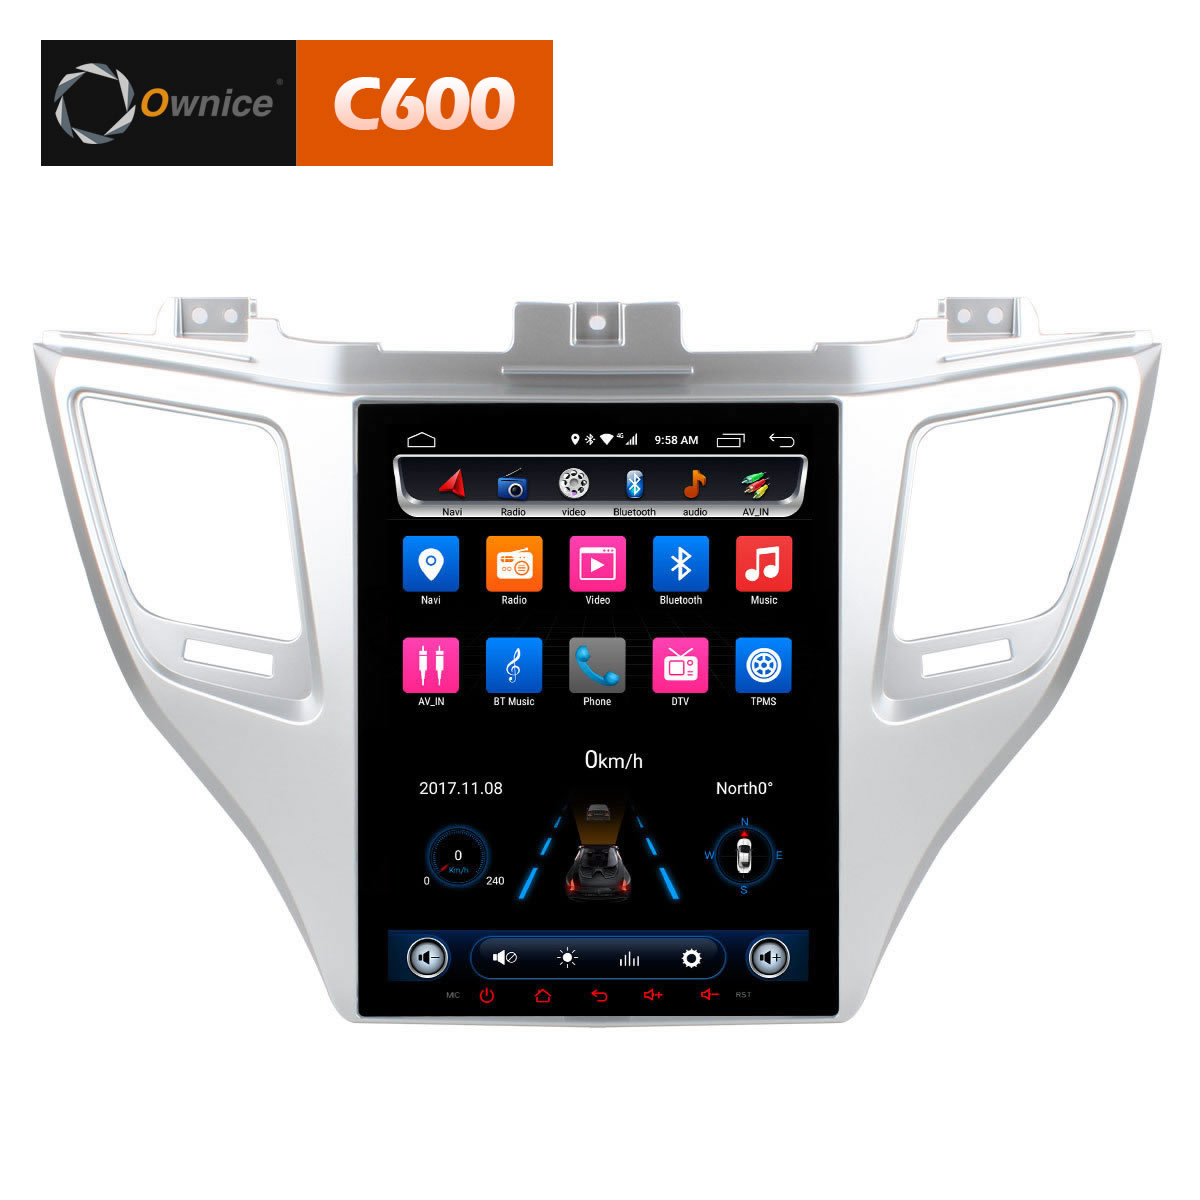 Штатная магнитола CARMEDIA OL-9712-9 Tesla Style (C600+) Hyundai Tucson 2016+ (все комплектации) 9 inch quad core tablet pc a33 atm7029 rom 8g 1024 600 pxl android 4 4 bluetooth fm hdmi android tablet 9 8 7